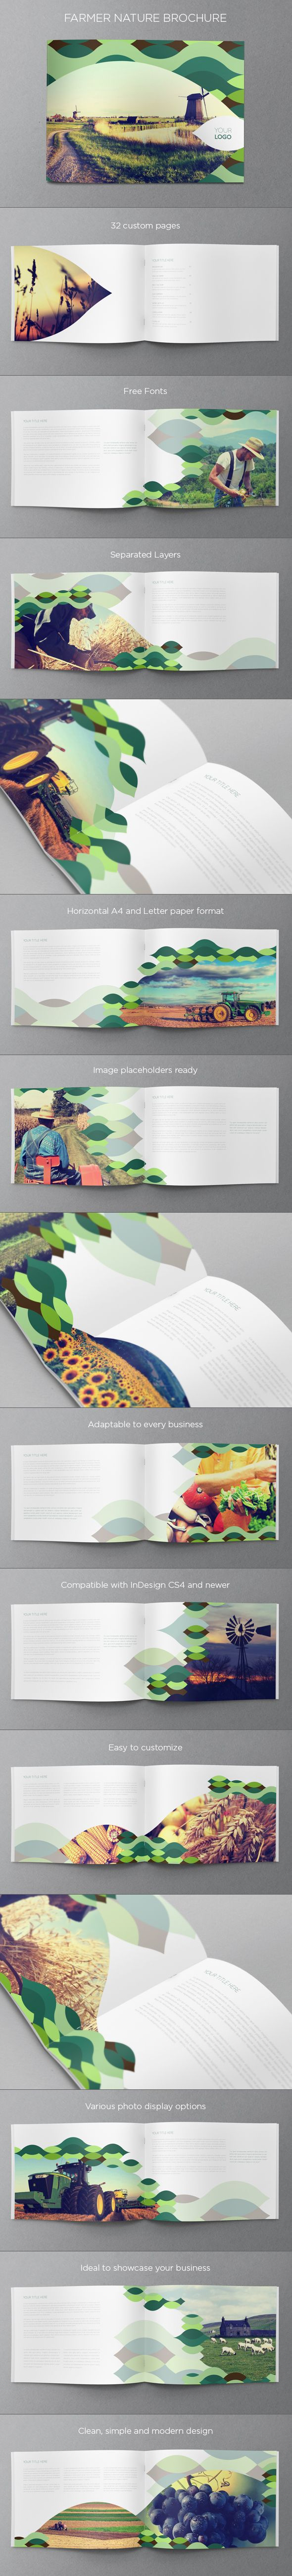 Farmer Nature Brochure. Download here: http://graphicriver.net/item/green-nature-brochure/6151806?ref=abradesign #design #brochure // Repinned by www.lunik2.com